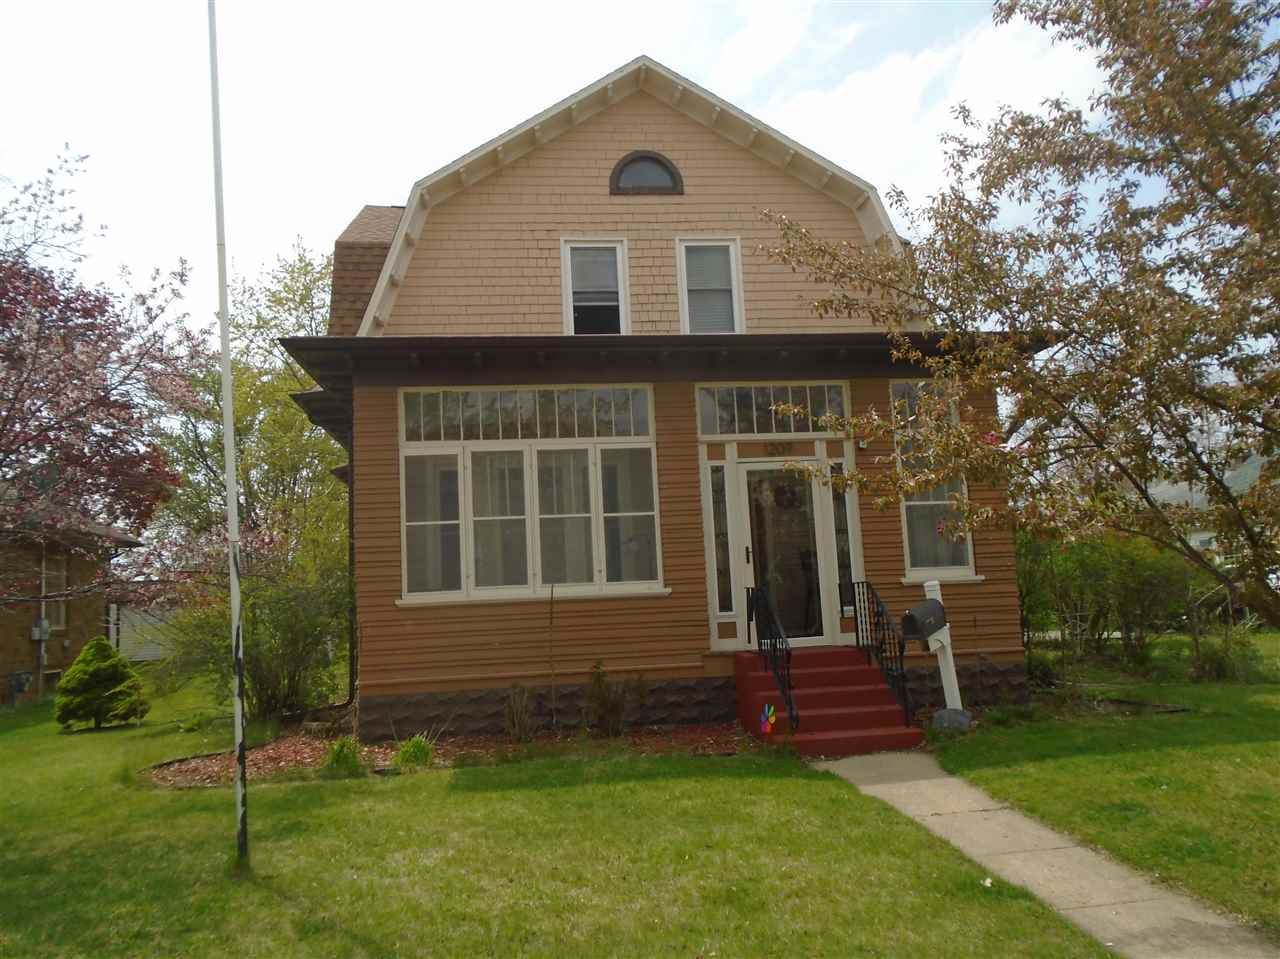 1209 McLean Ave, Tomah, WI 54660 - #: 1883510